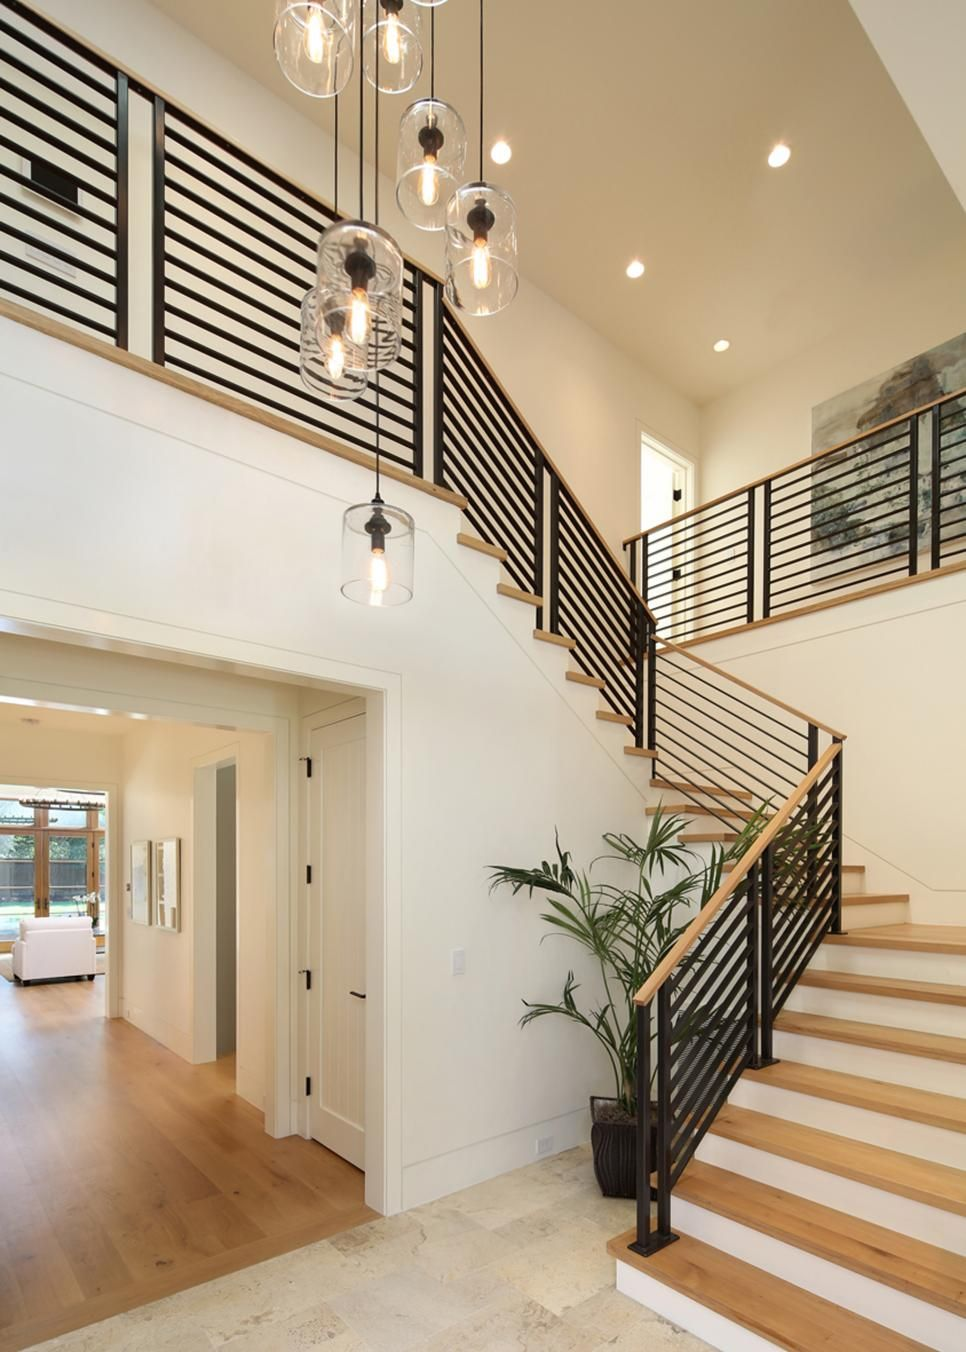 10 Best Of Modern Stairwell Pendant Lighting: Contemporary Home With Neutral Palette And Luxury Touches